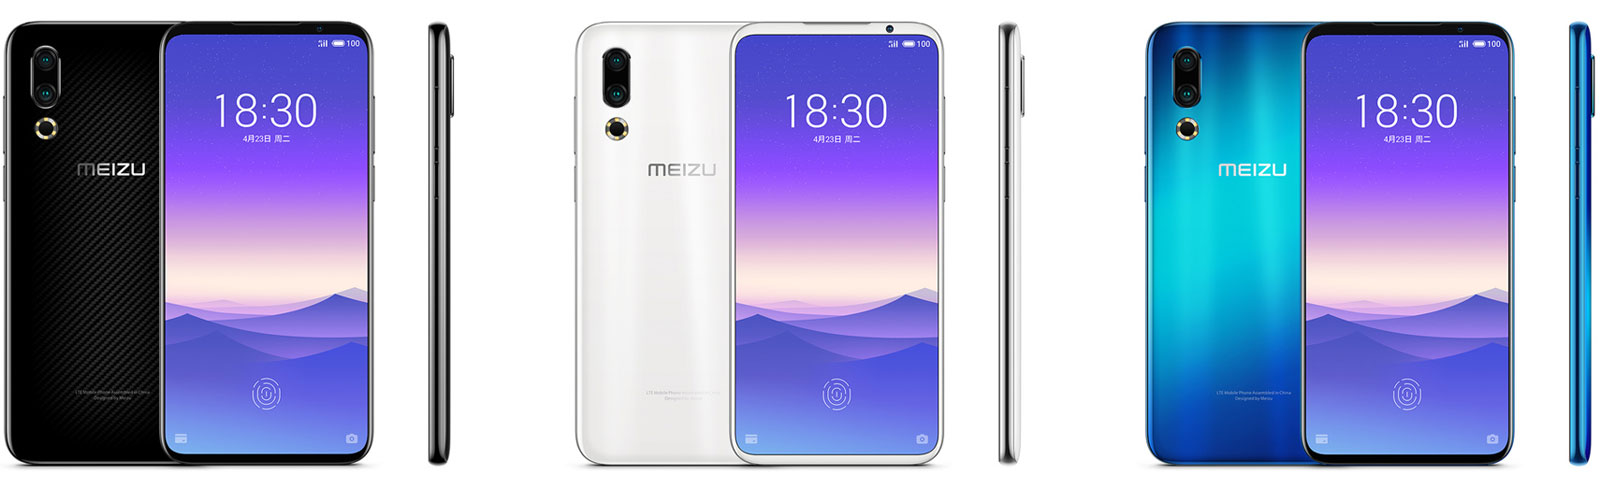 Meizu 16s is official with a Snapdragon 855 chipset and 48MP camera